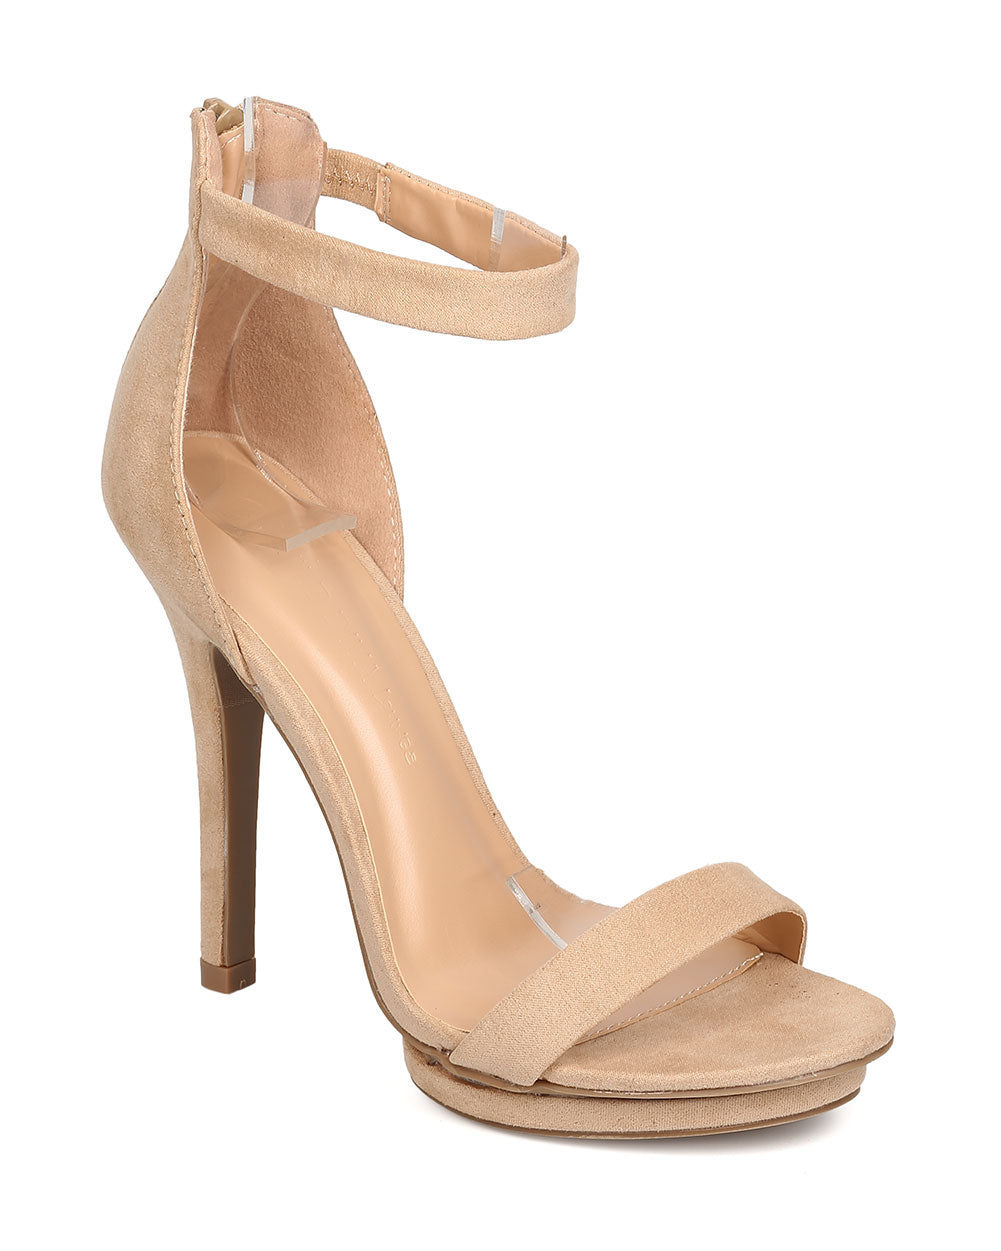 Wild Diva Amy-01 Natural Open Toe Ankle Strap Platform Heel